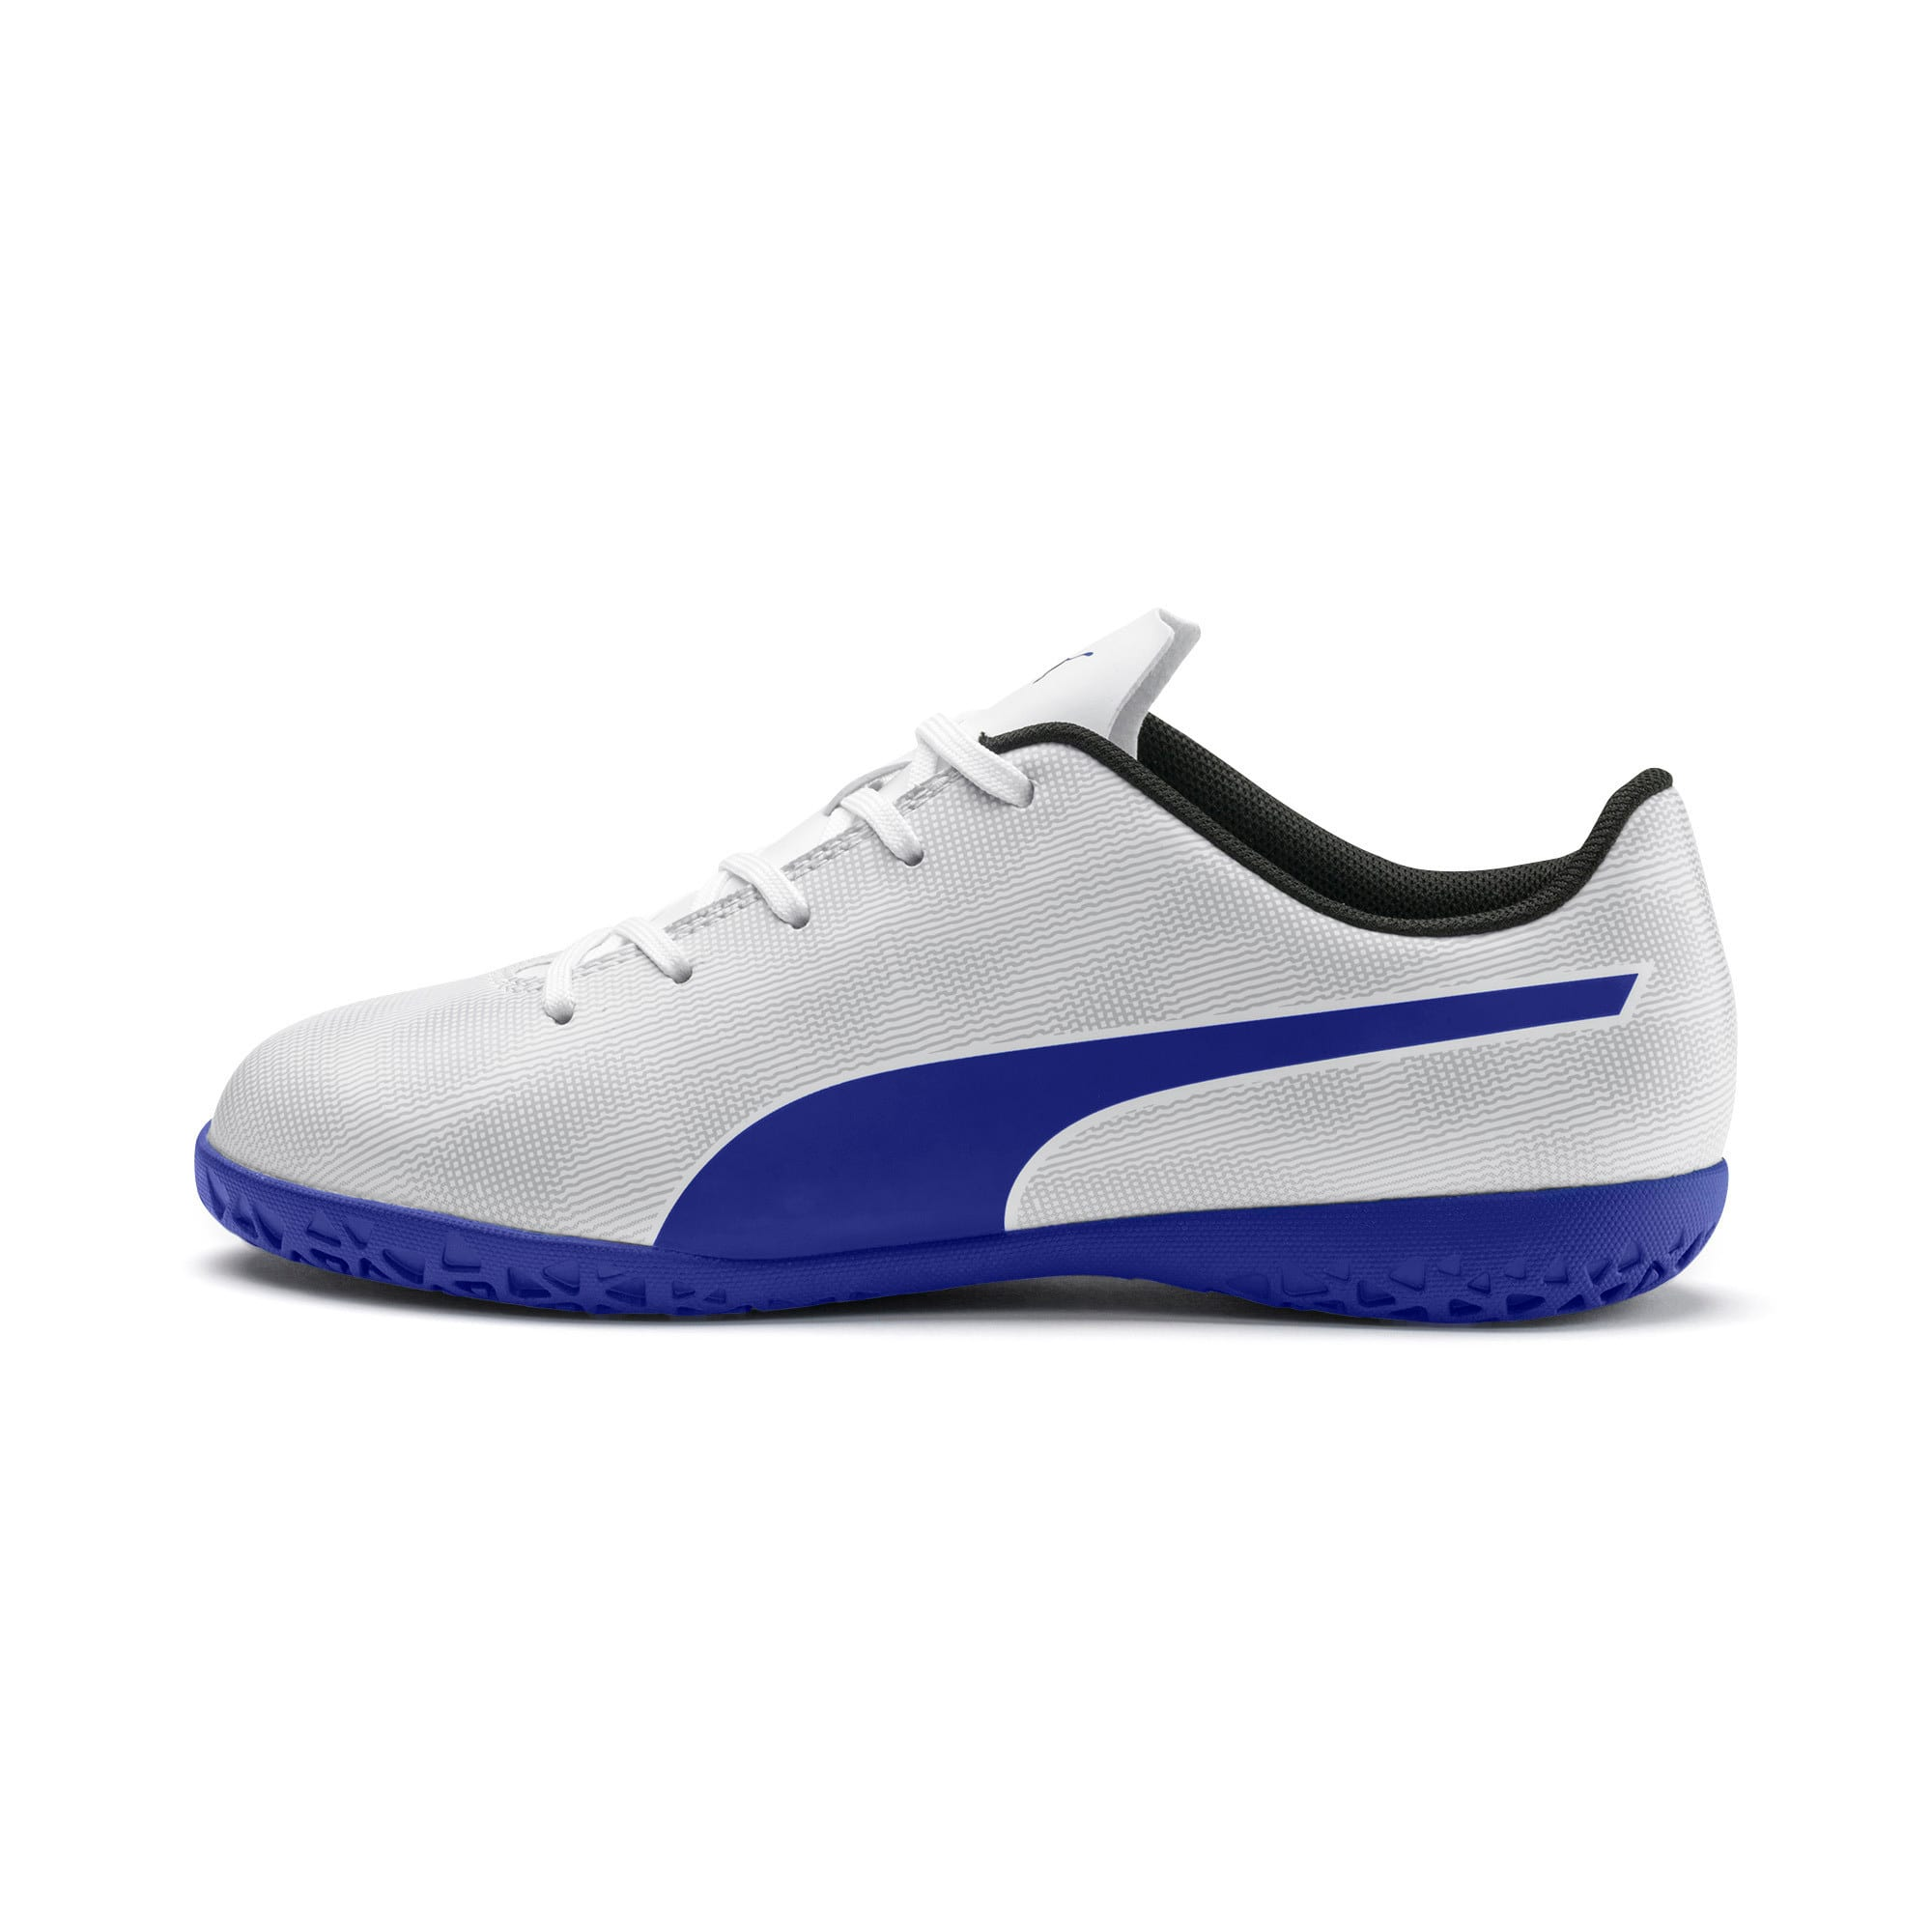 Thumbnail 1 of Rapido IT Boy's Soccer Shoes JR, White-Royal Blue-Light Gray, medium